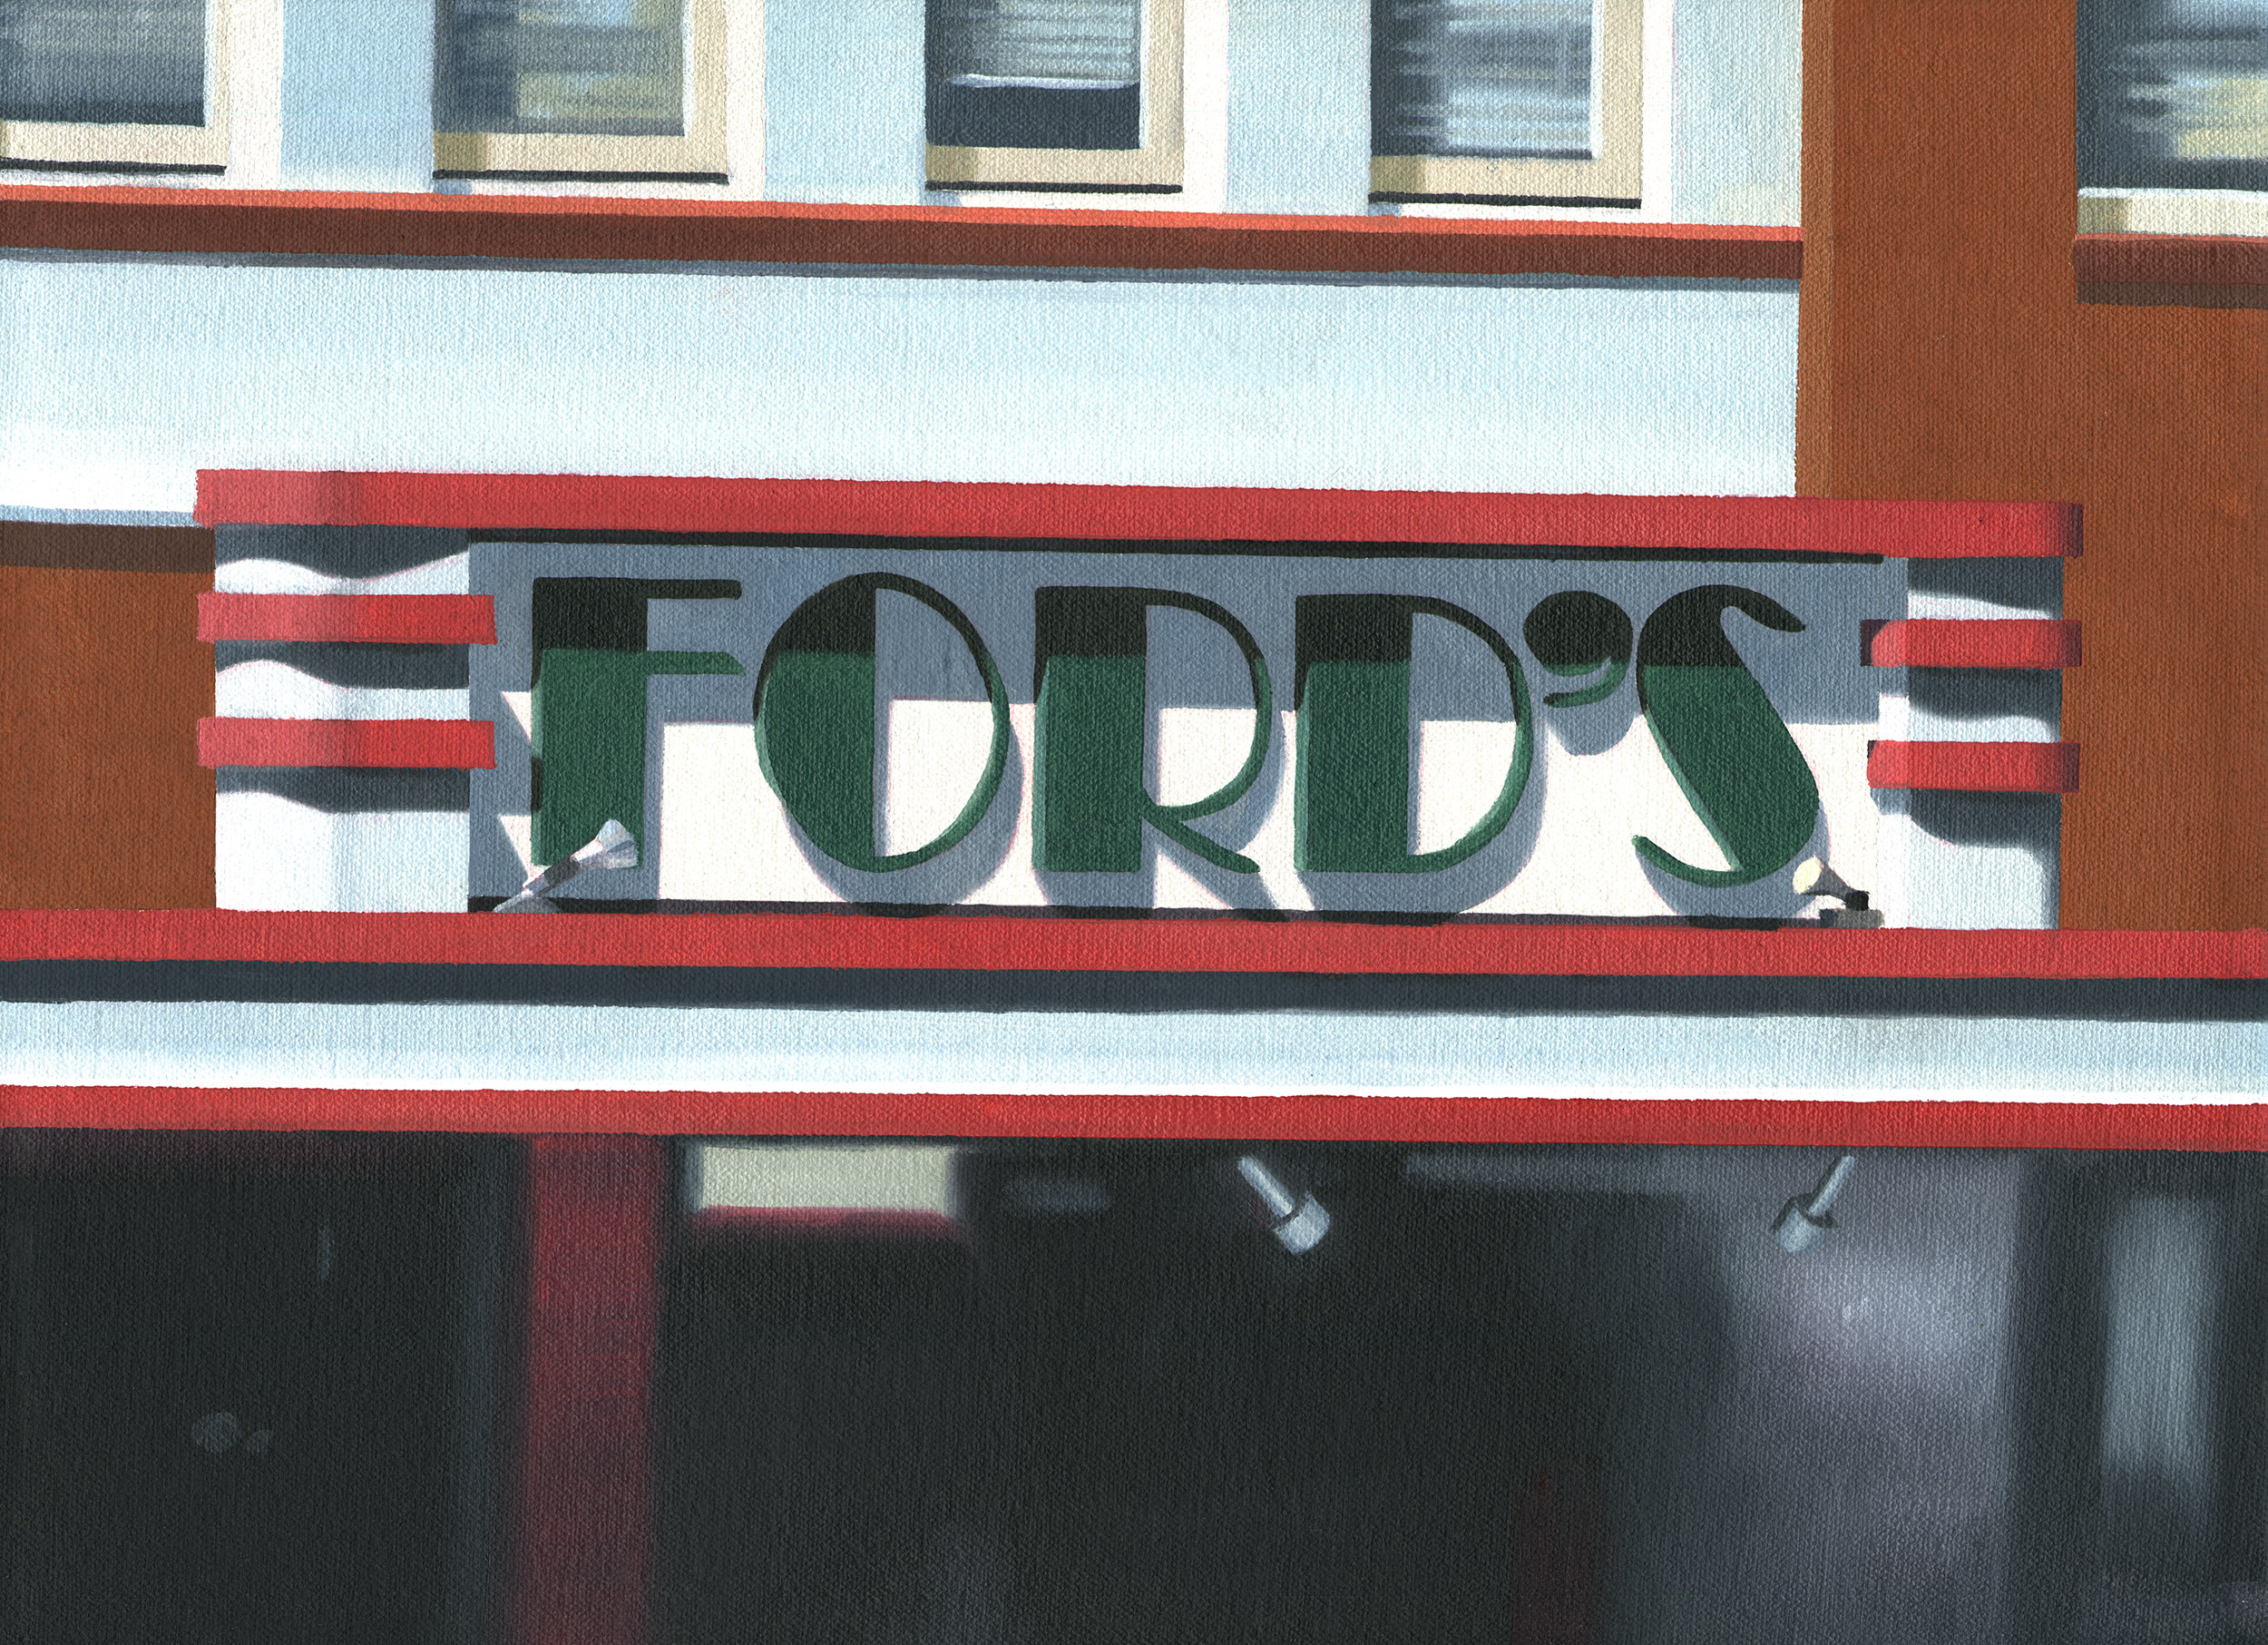 "Ford's, 2017. Oil on canvas 15"" x 11"""